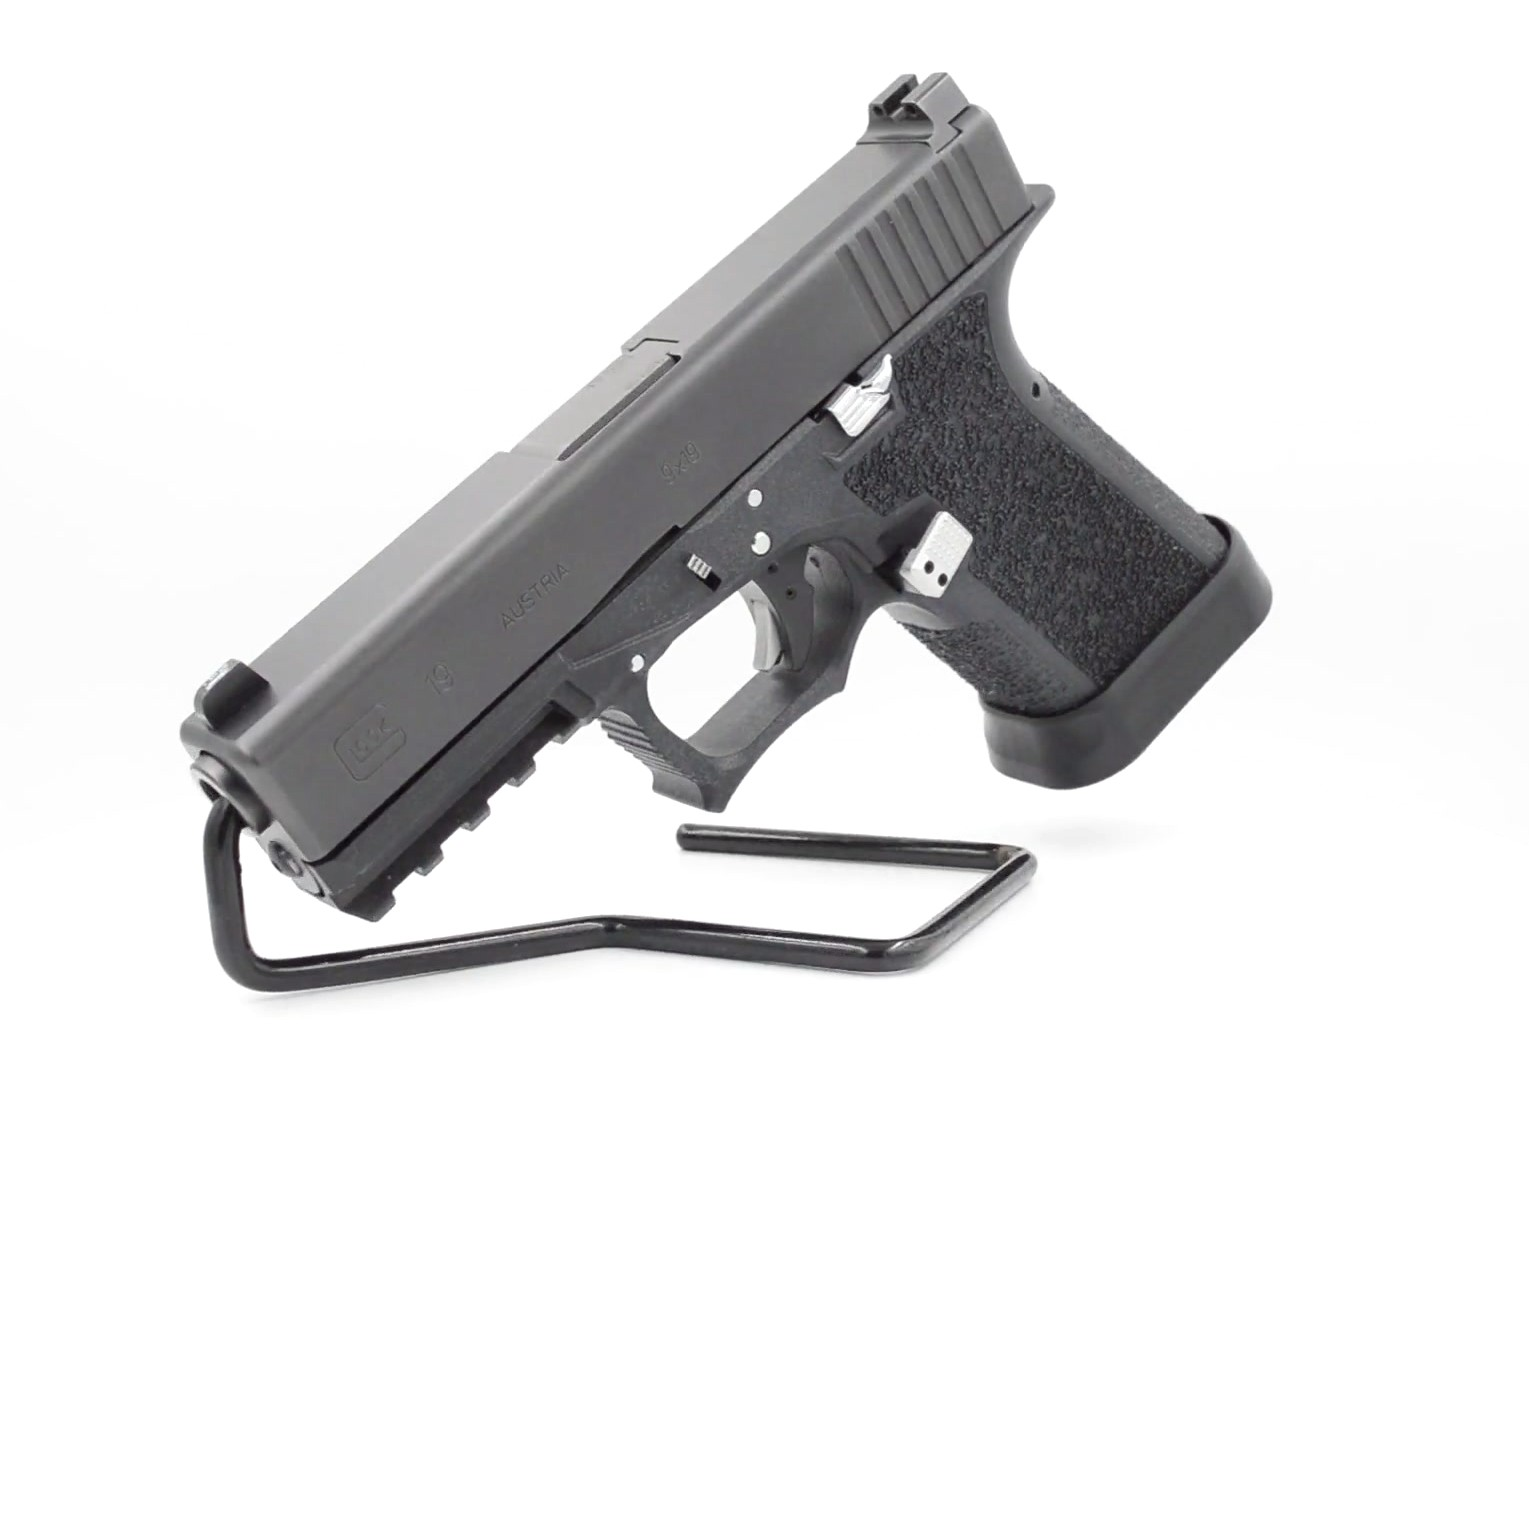 Pyramid Trigger for Polymer80 Frame | Glockstore Community